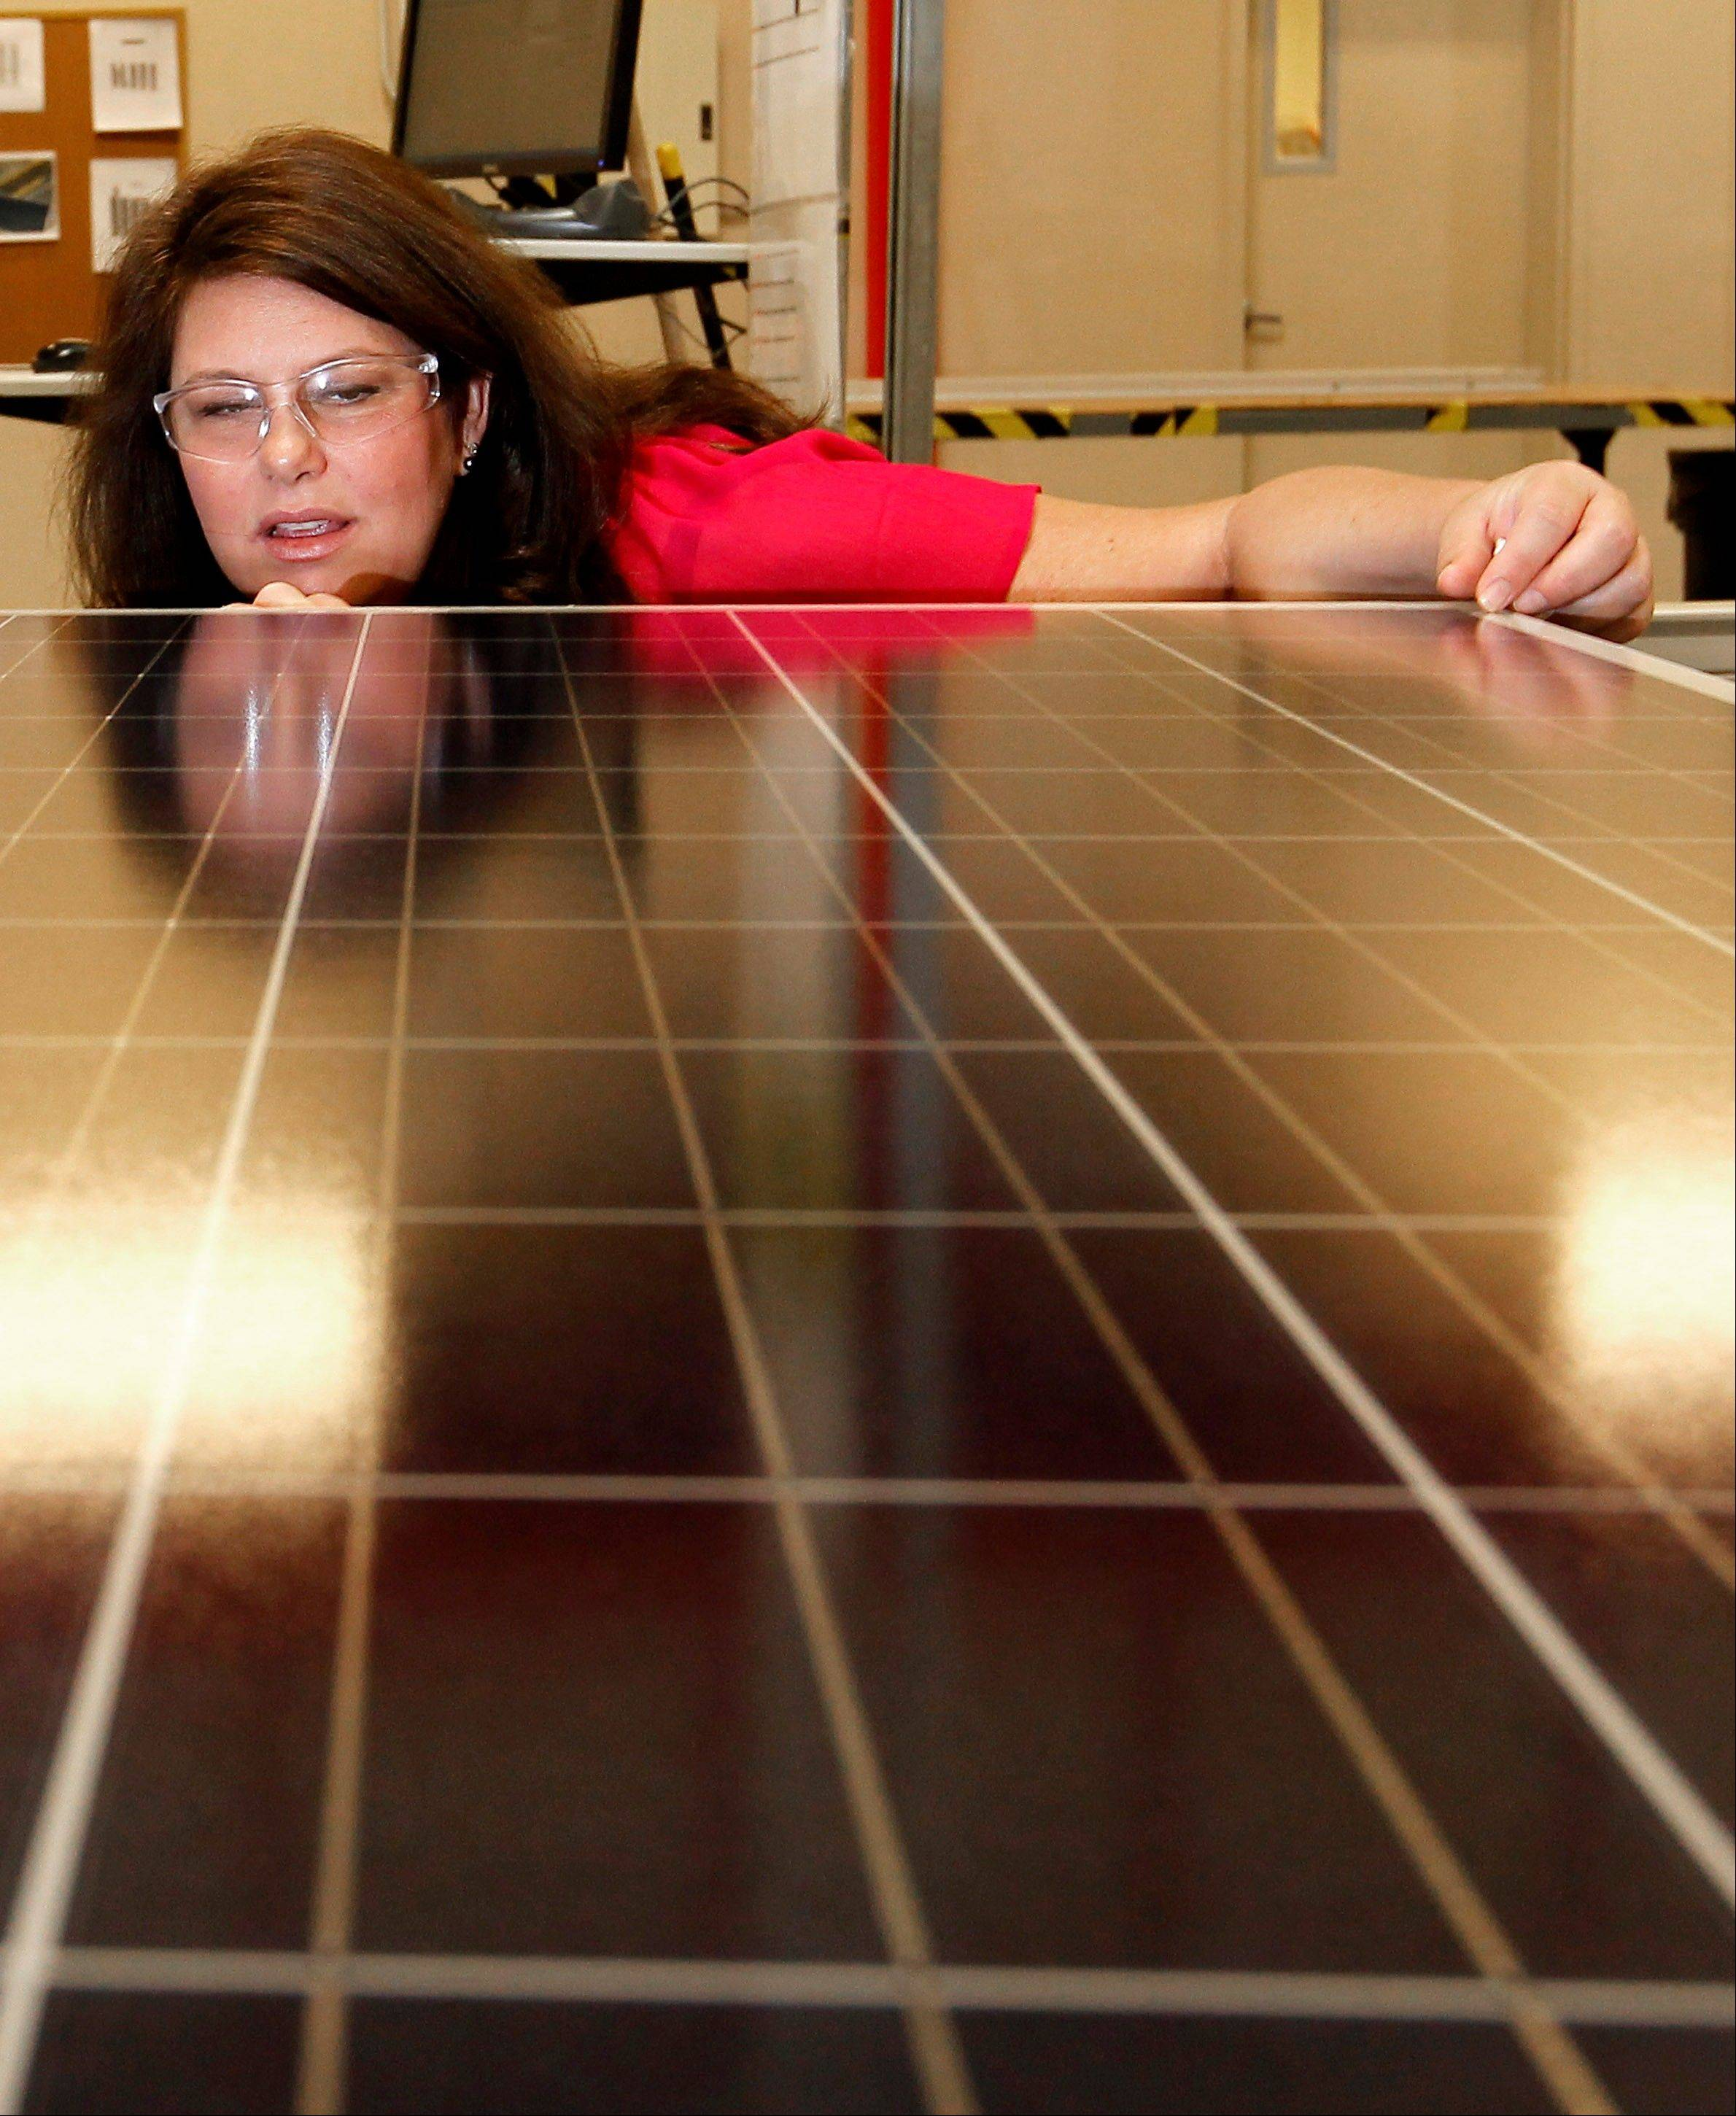 tacey Rassas, a quality control manager at Suntech Power Holdings Co., a Chinese-owned solar panel manufacturer, examines a solar panel at a company facility in Goodyear, Ariz. The factory makes solar panels for one of the world's biggest solar manufacturers.